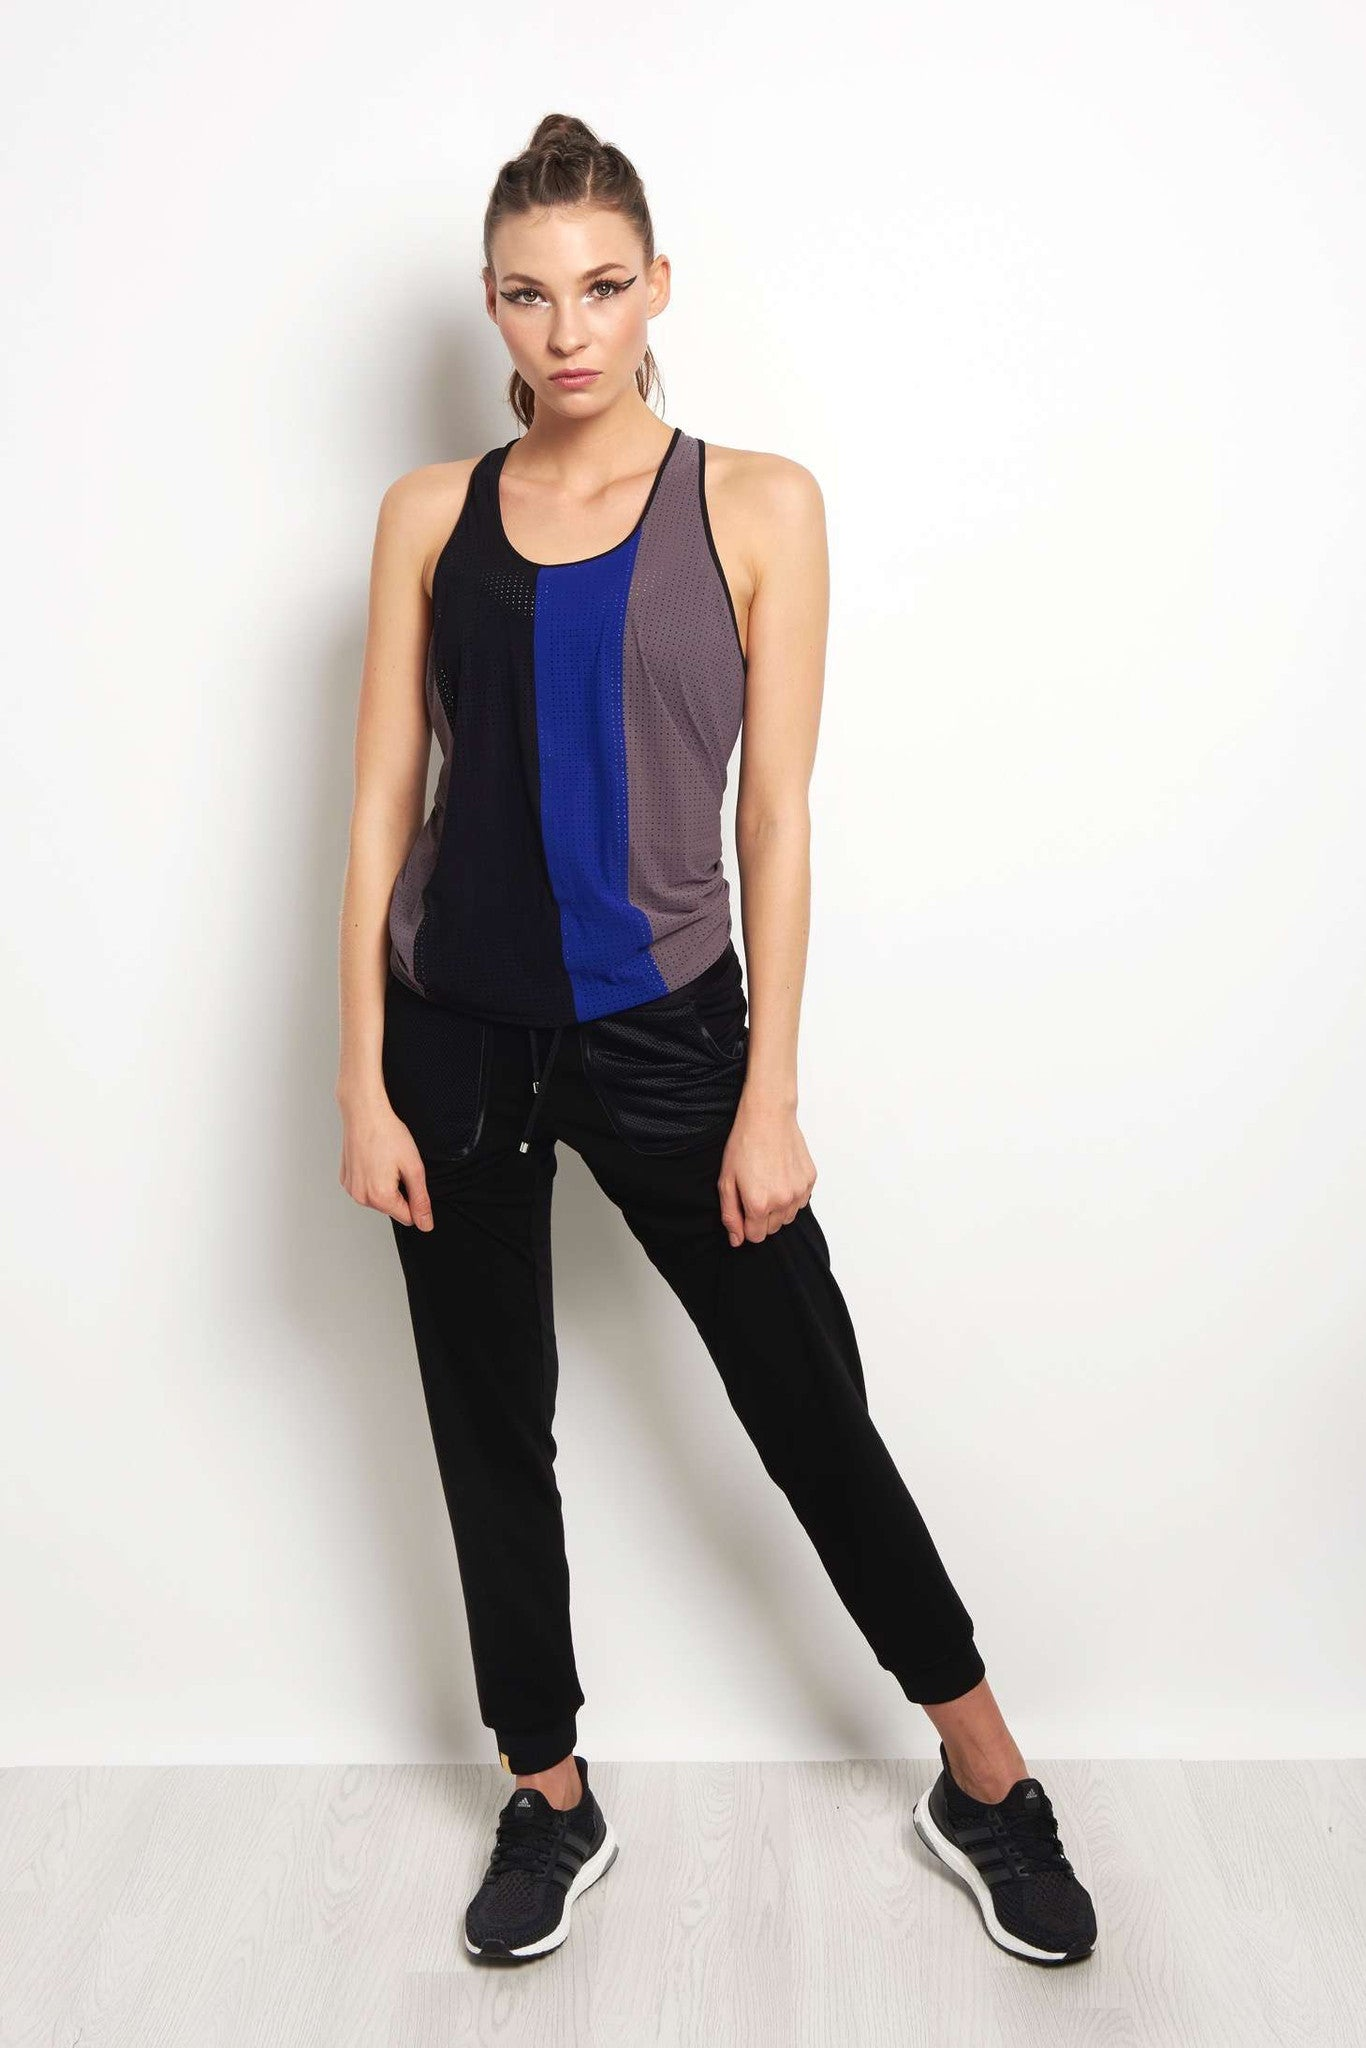 MONREAL Racer Tank - Taupe/Joy/Black image 4 - The Sports Edit